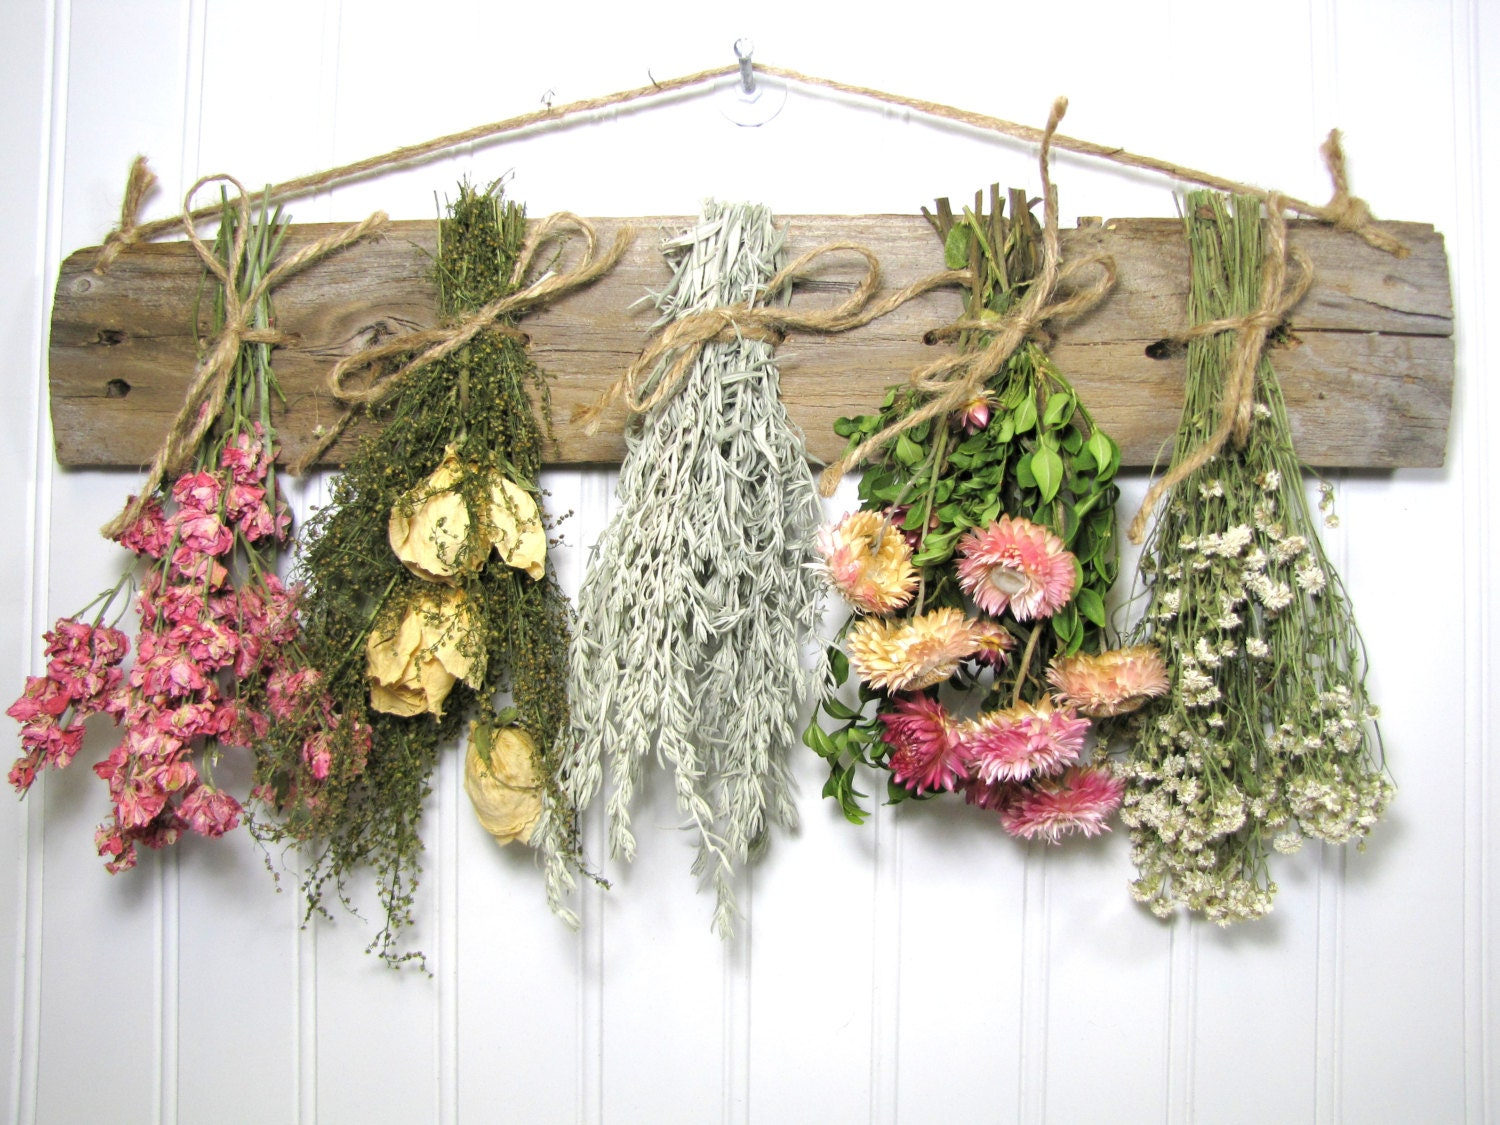 dried flower rack dried floral arrangement wall decor dried